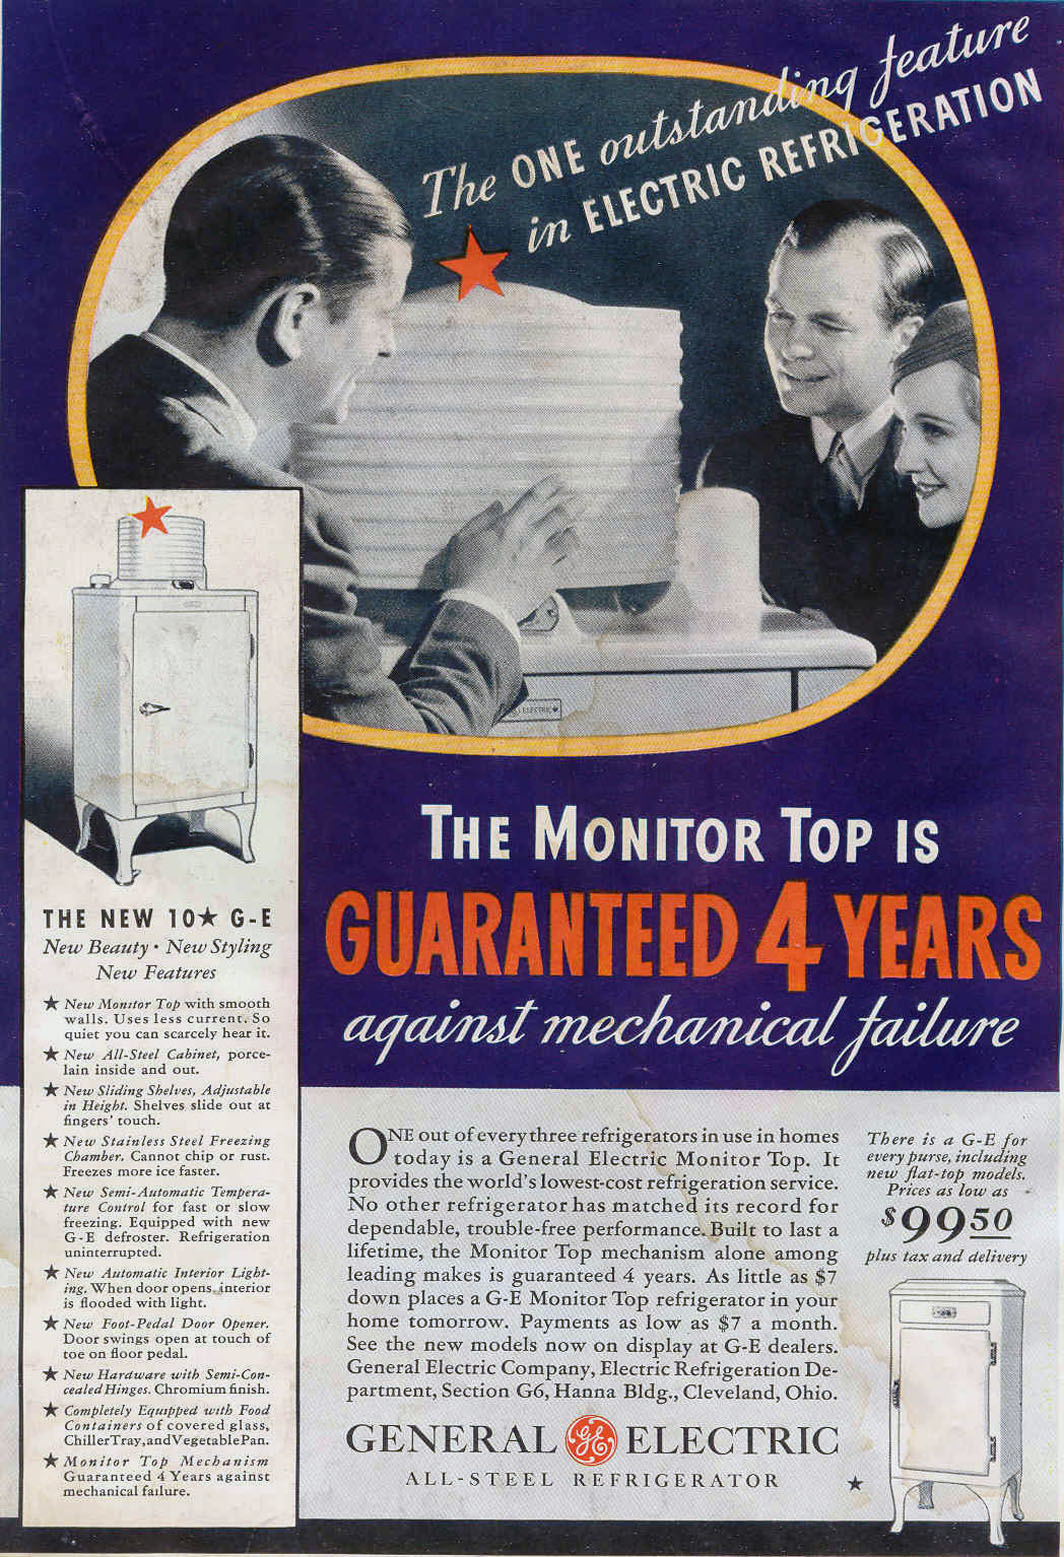 MONITOR TOP ALL-STEEL ELECTRIC REFRIGERATOR GOOD HOUSEKEEPING 06/01/1933 INSIDE FRONT